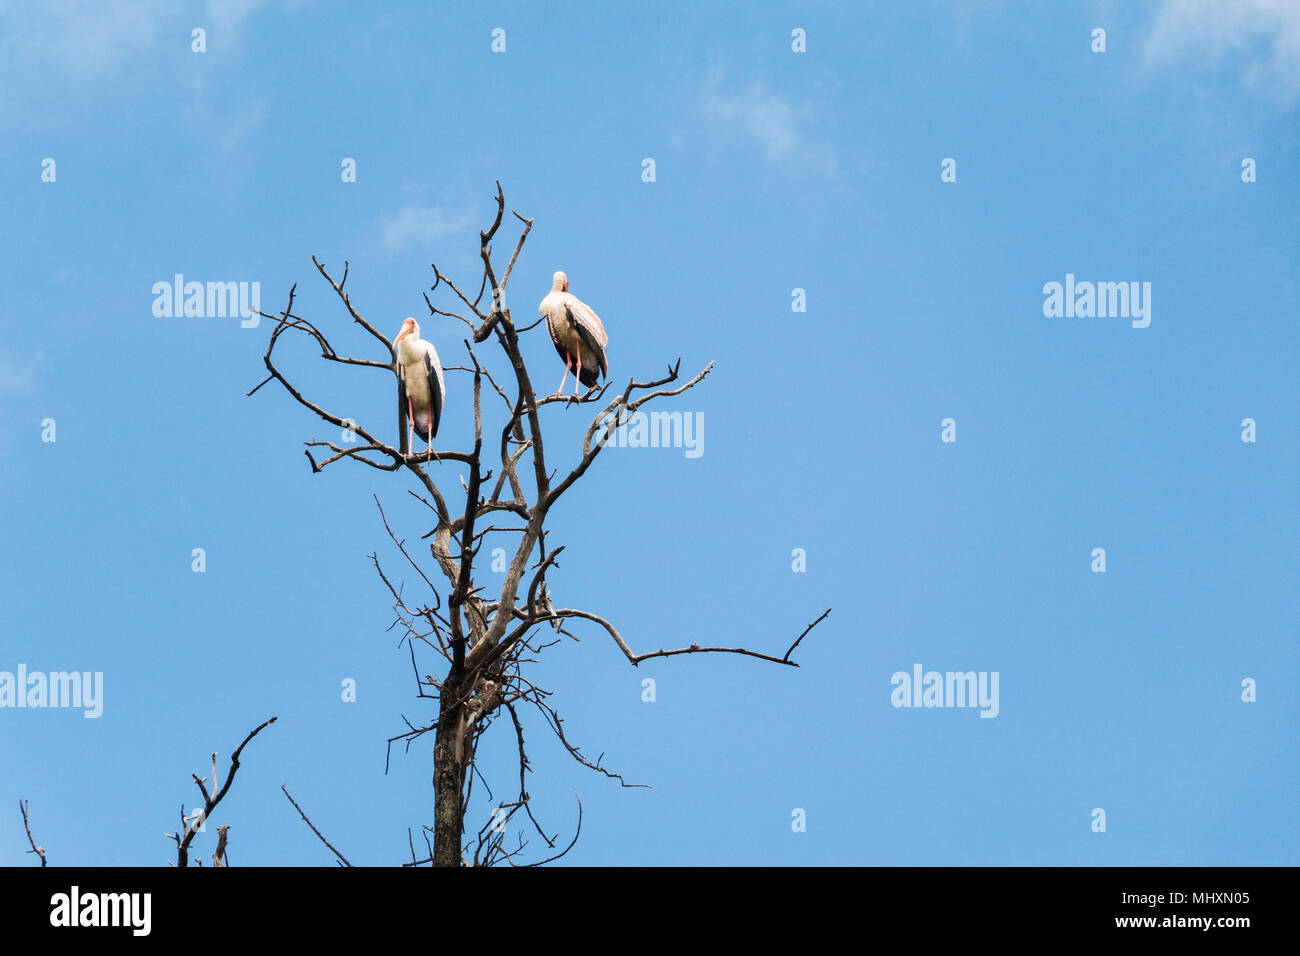 pelicans sitting in a tree in Lake Manyara, Tanzania - Stock Image